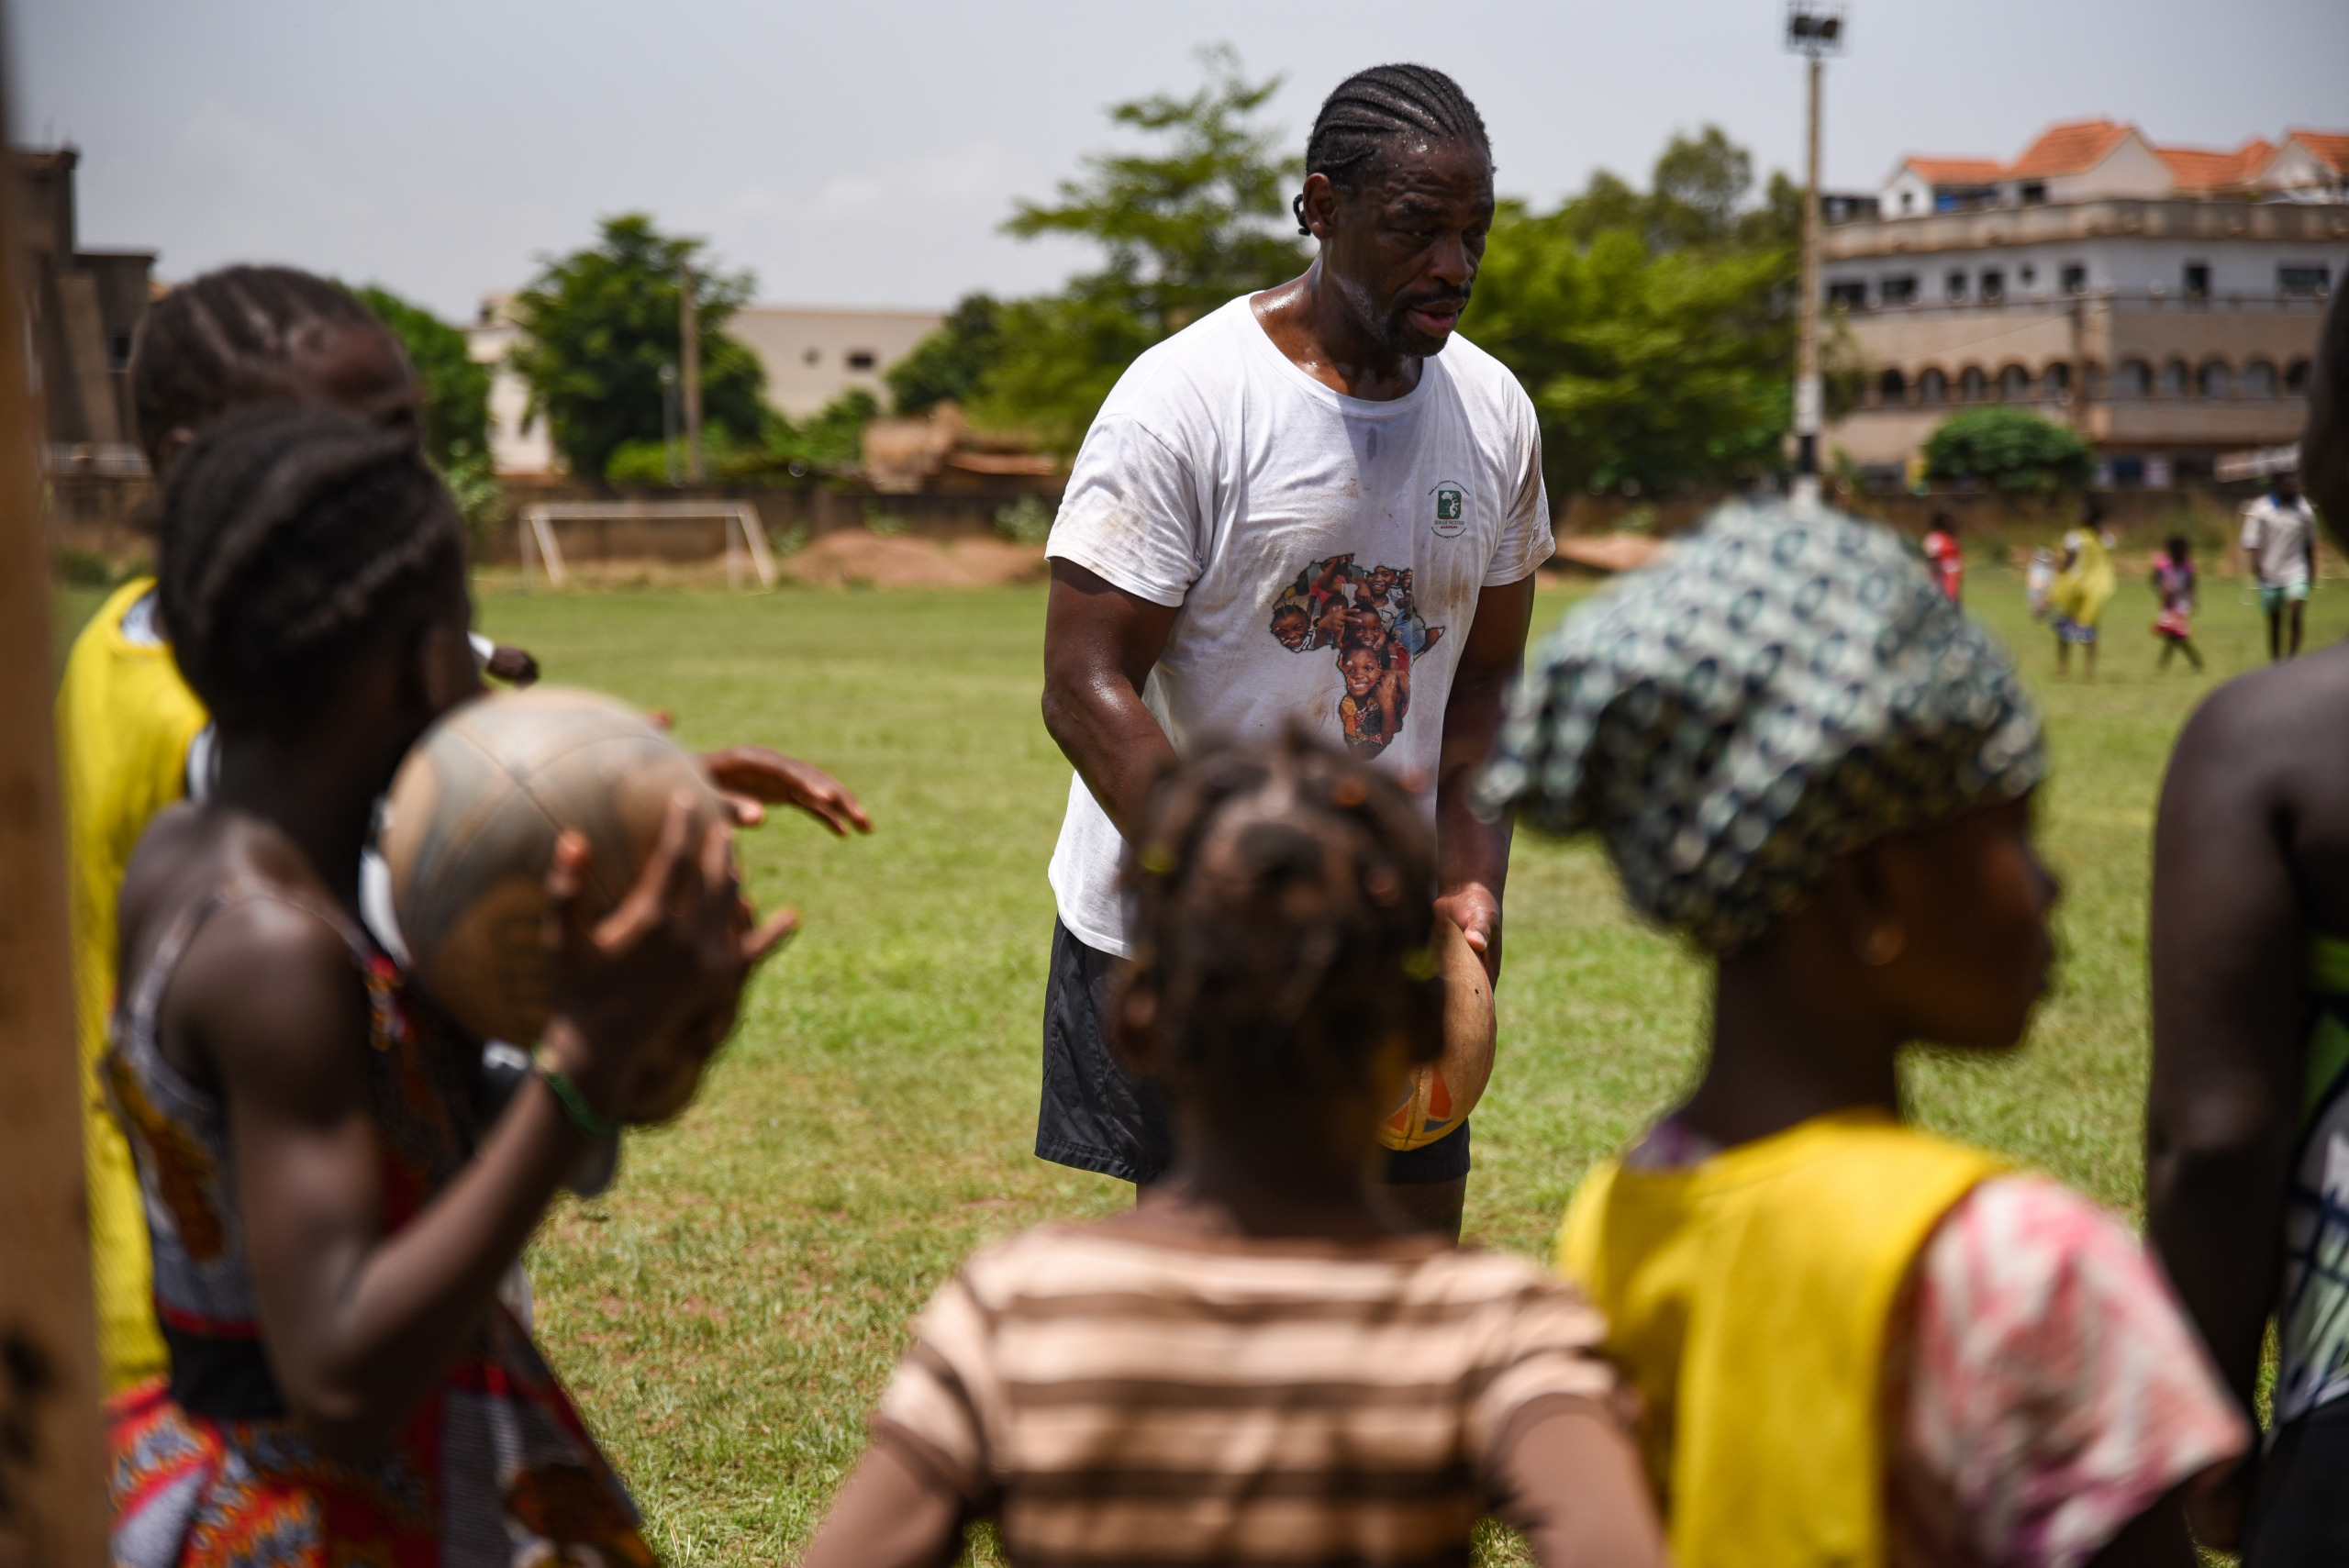 Serge and the girls playing rugby